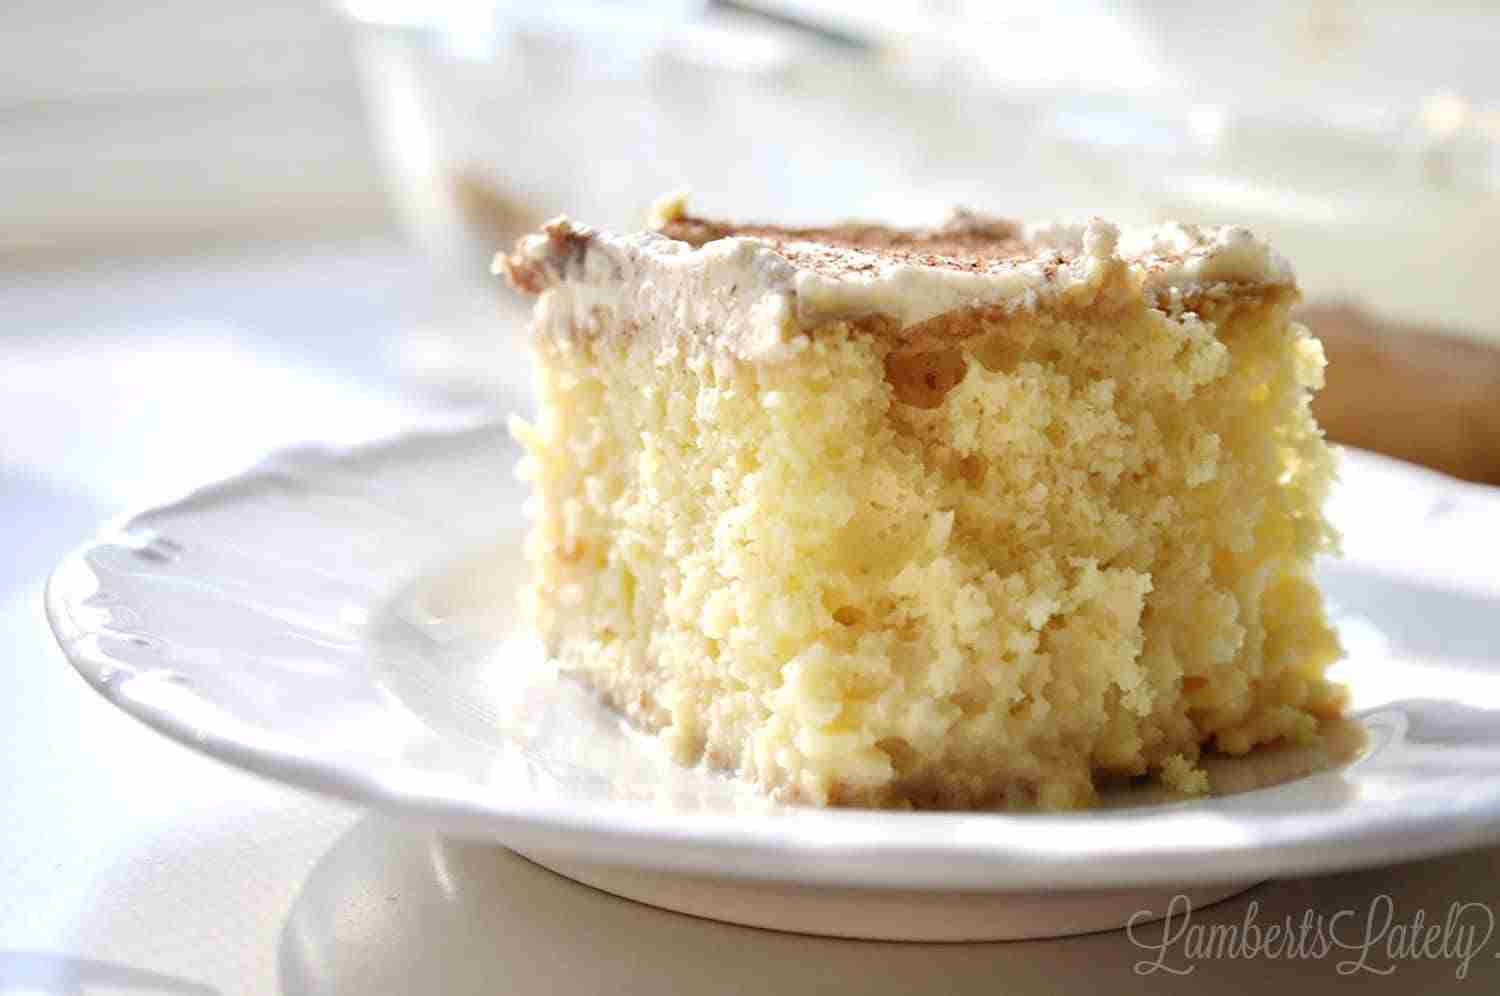 Need a shortcut recipe for Tres Leches Cake? This post shows you how to make it the easy way, with simple ingredients like boxed cake mix.